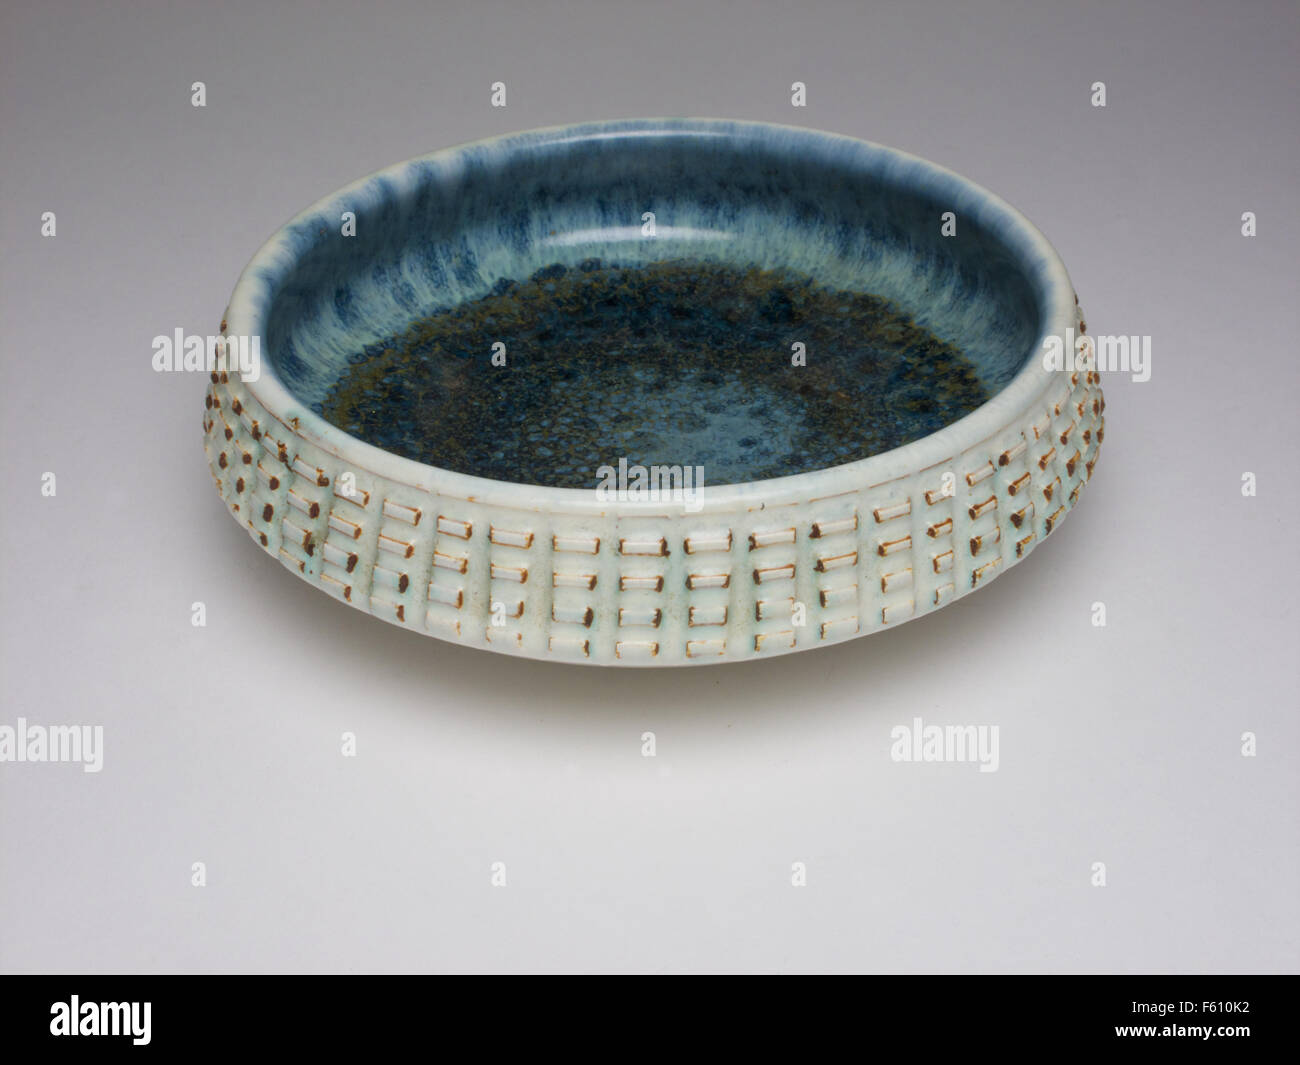 Poole Pottery 1970s bowl - Stock Image